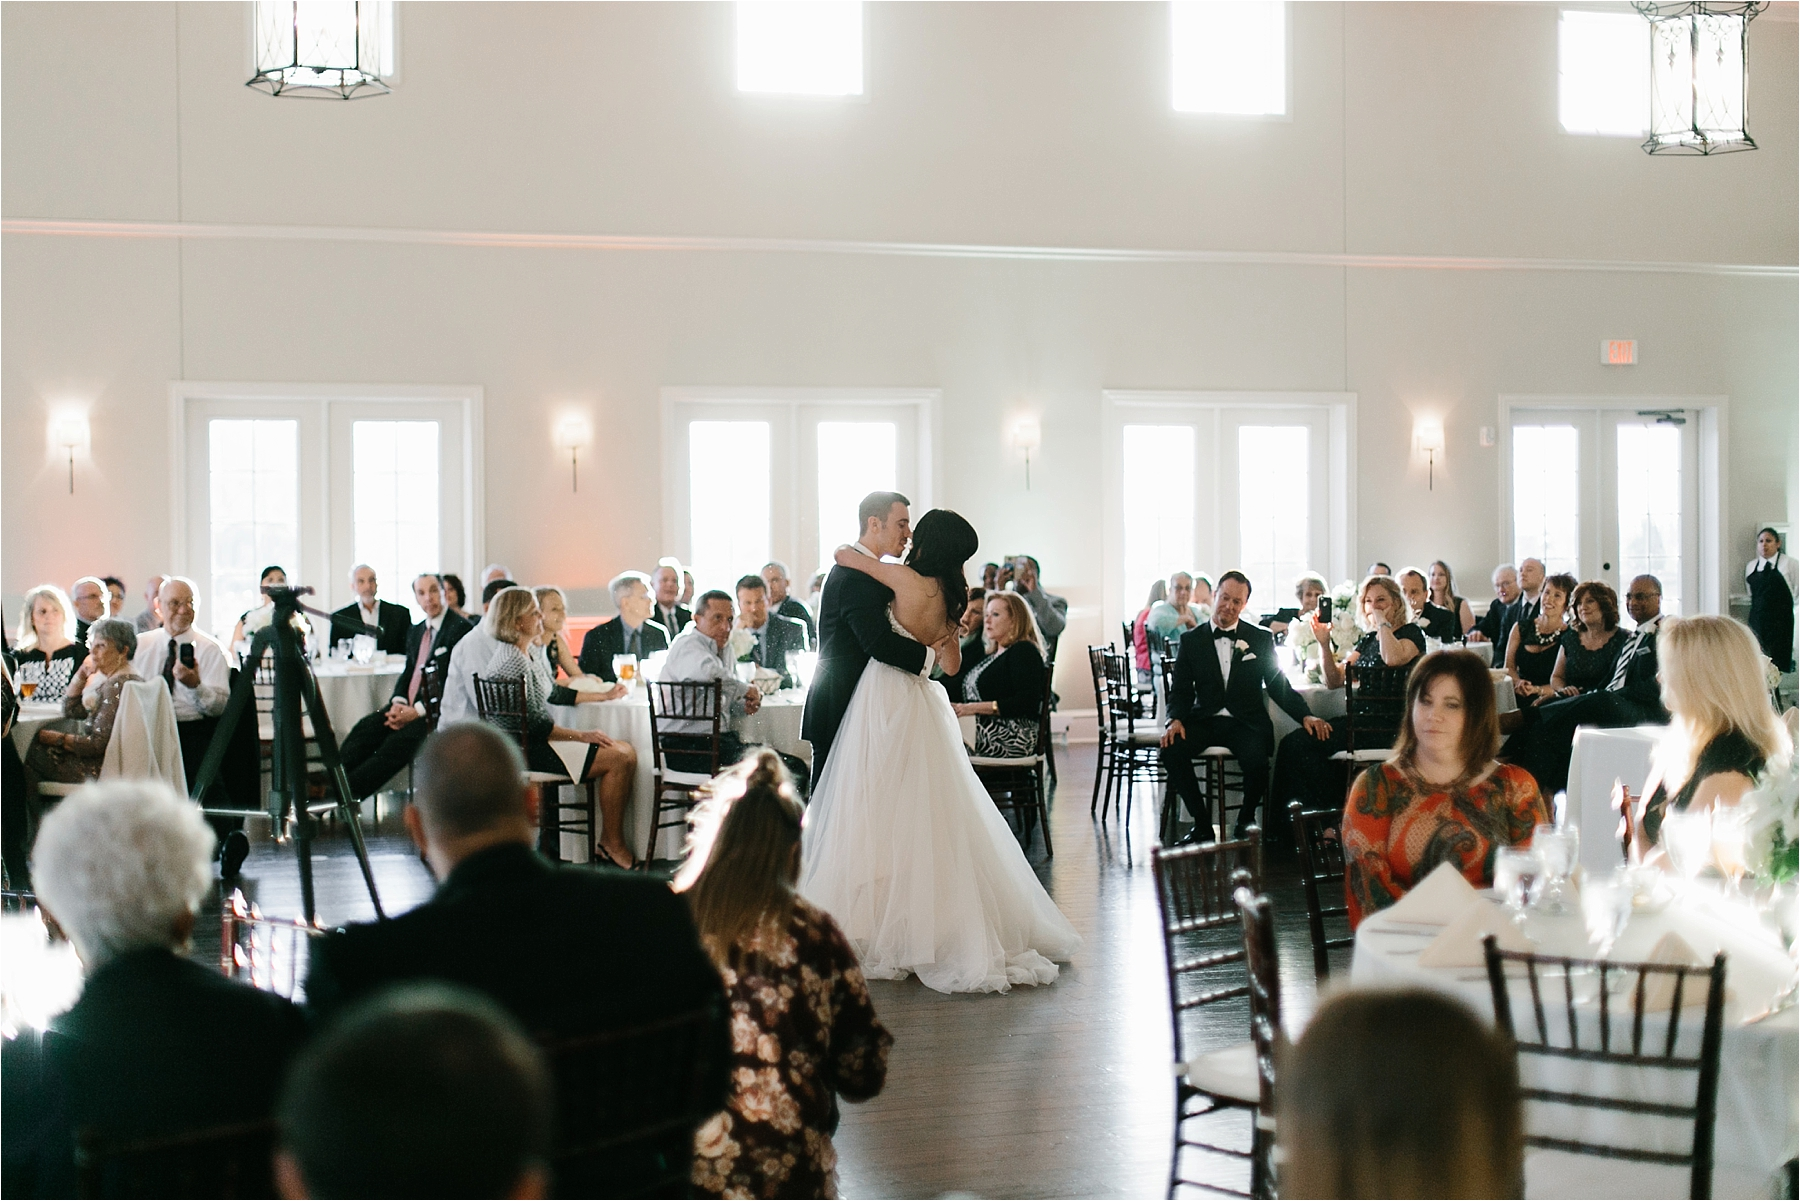 Chrissy + Zach __ The Windsor at Hebron Park Wedding by North Texas Wedding Photographer _ Rachel Meagan Photography __076